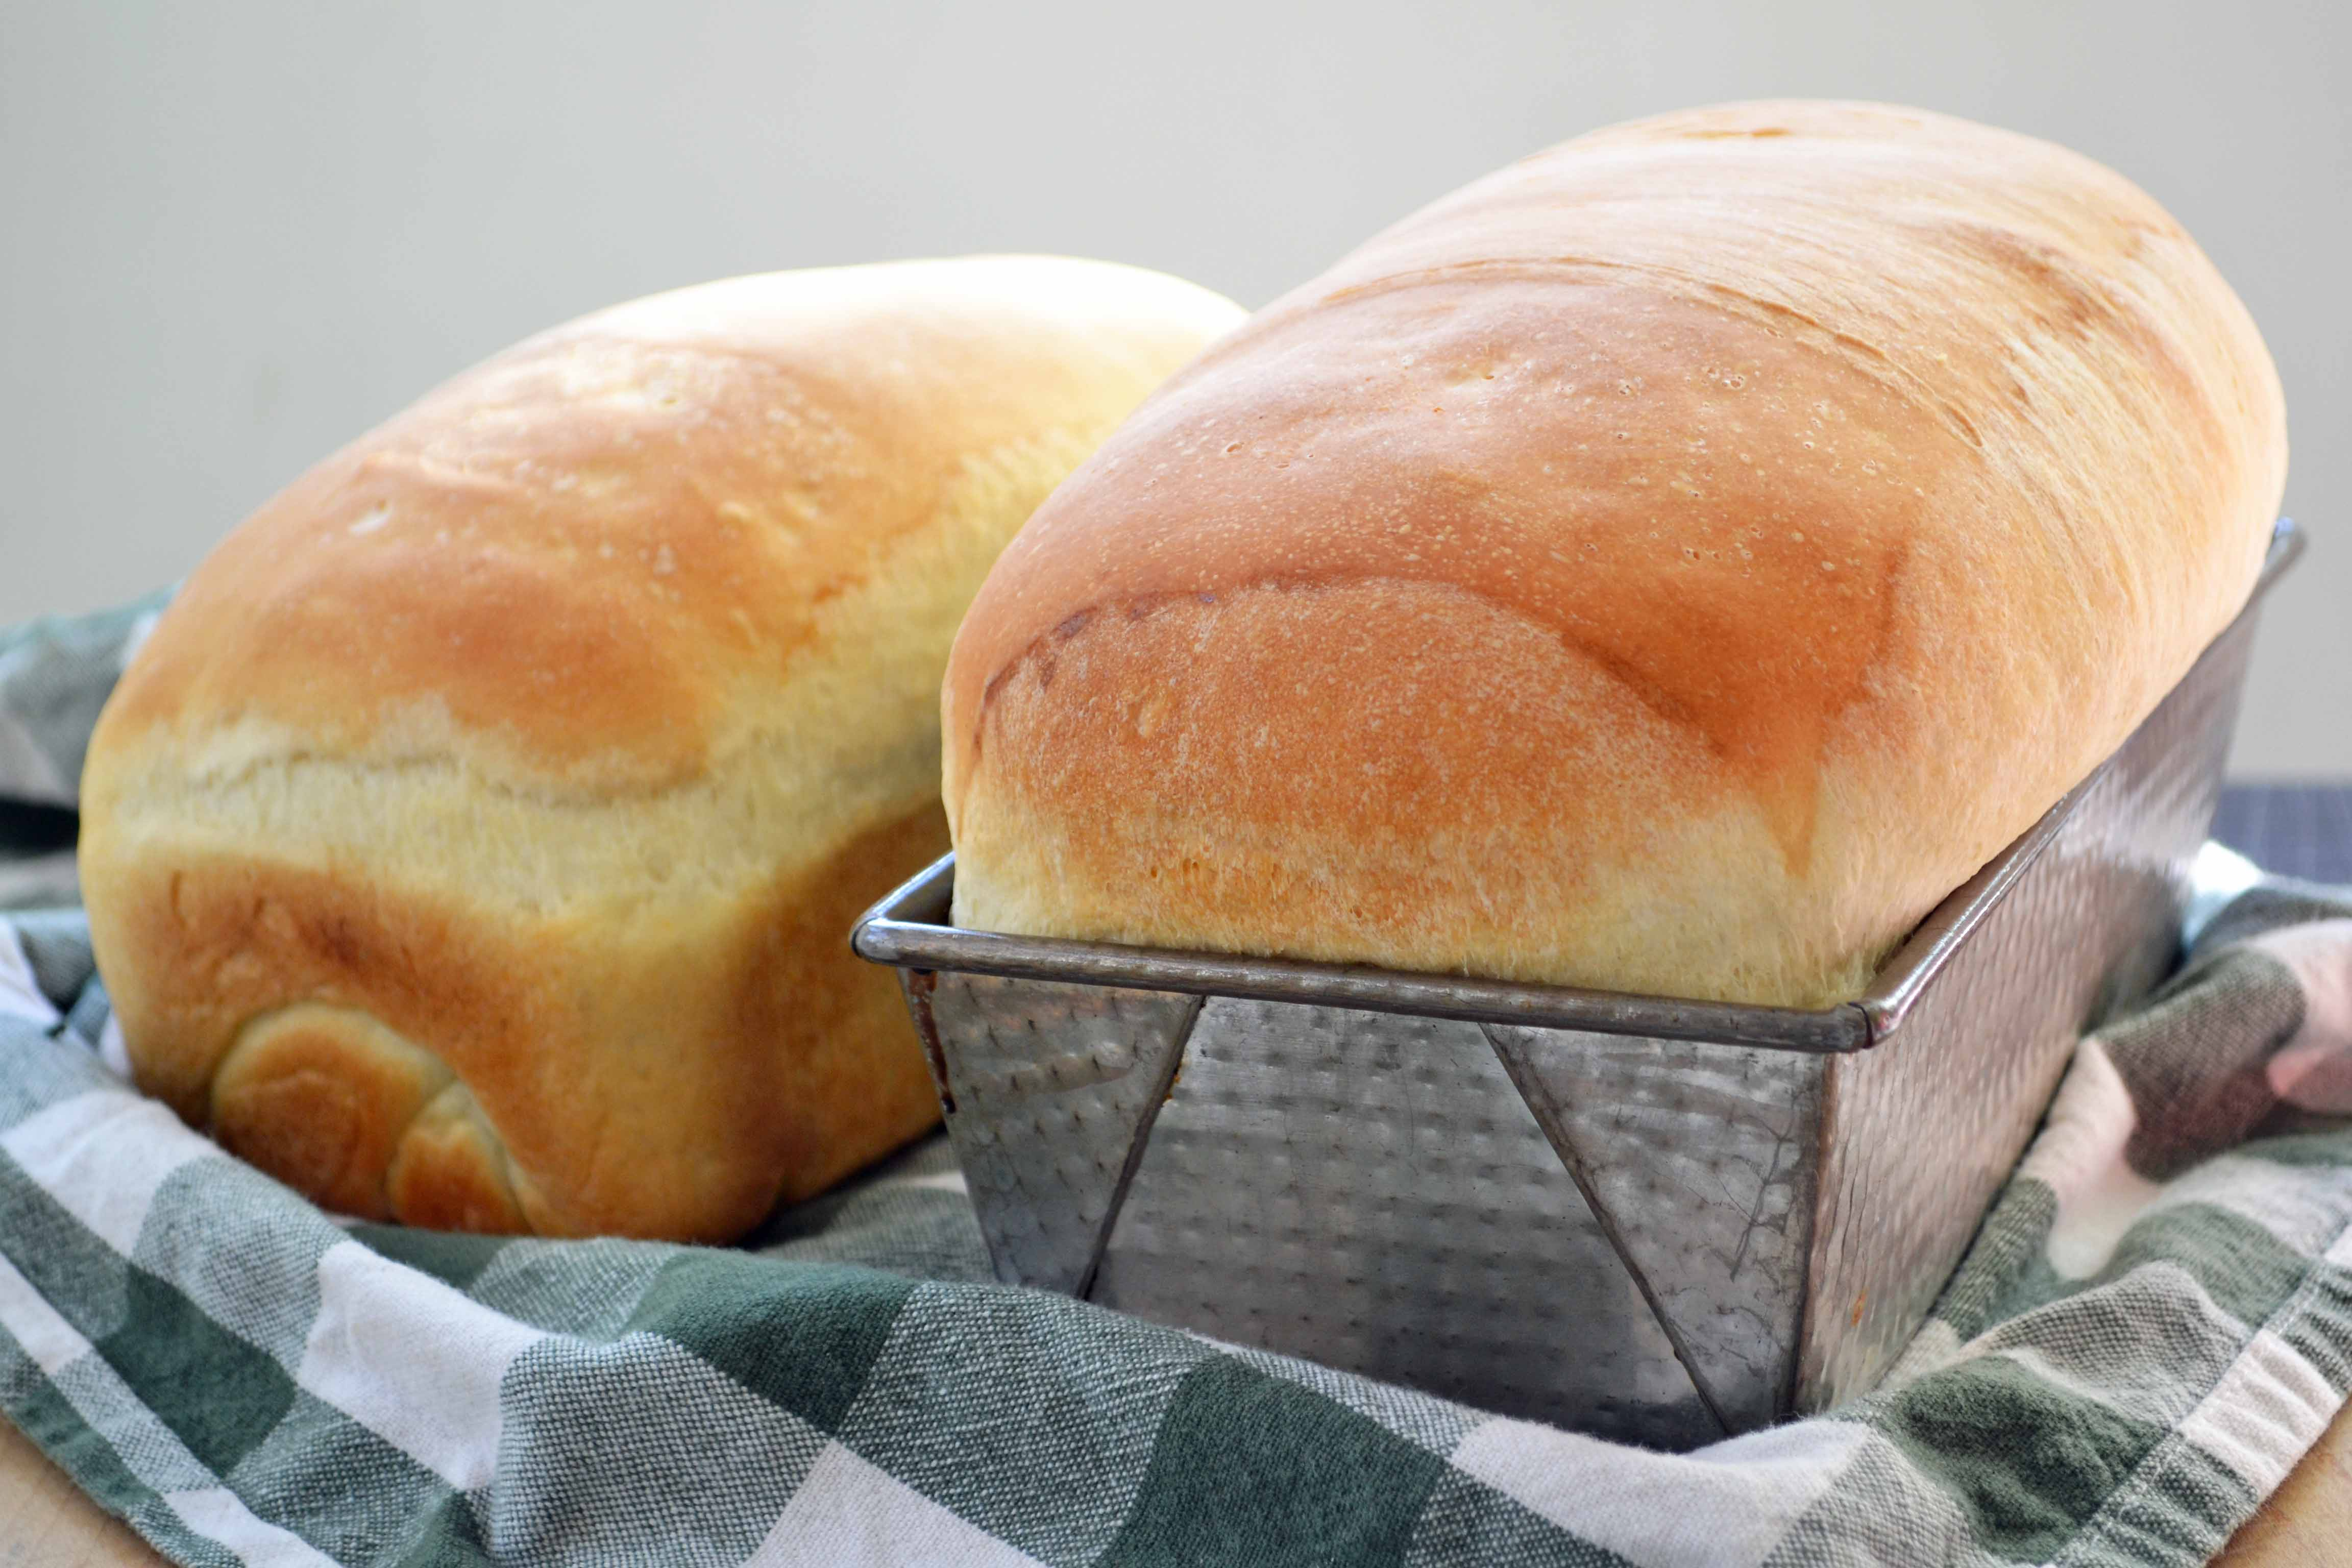 The Fresh Just Baked Bread You Get Is Not Plan 4 Profits